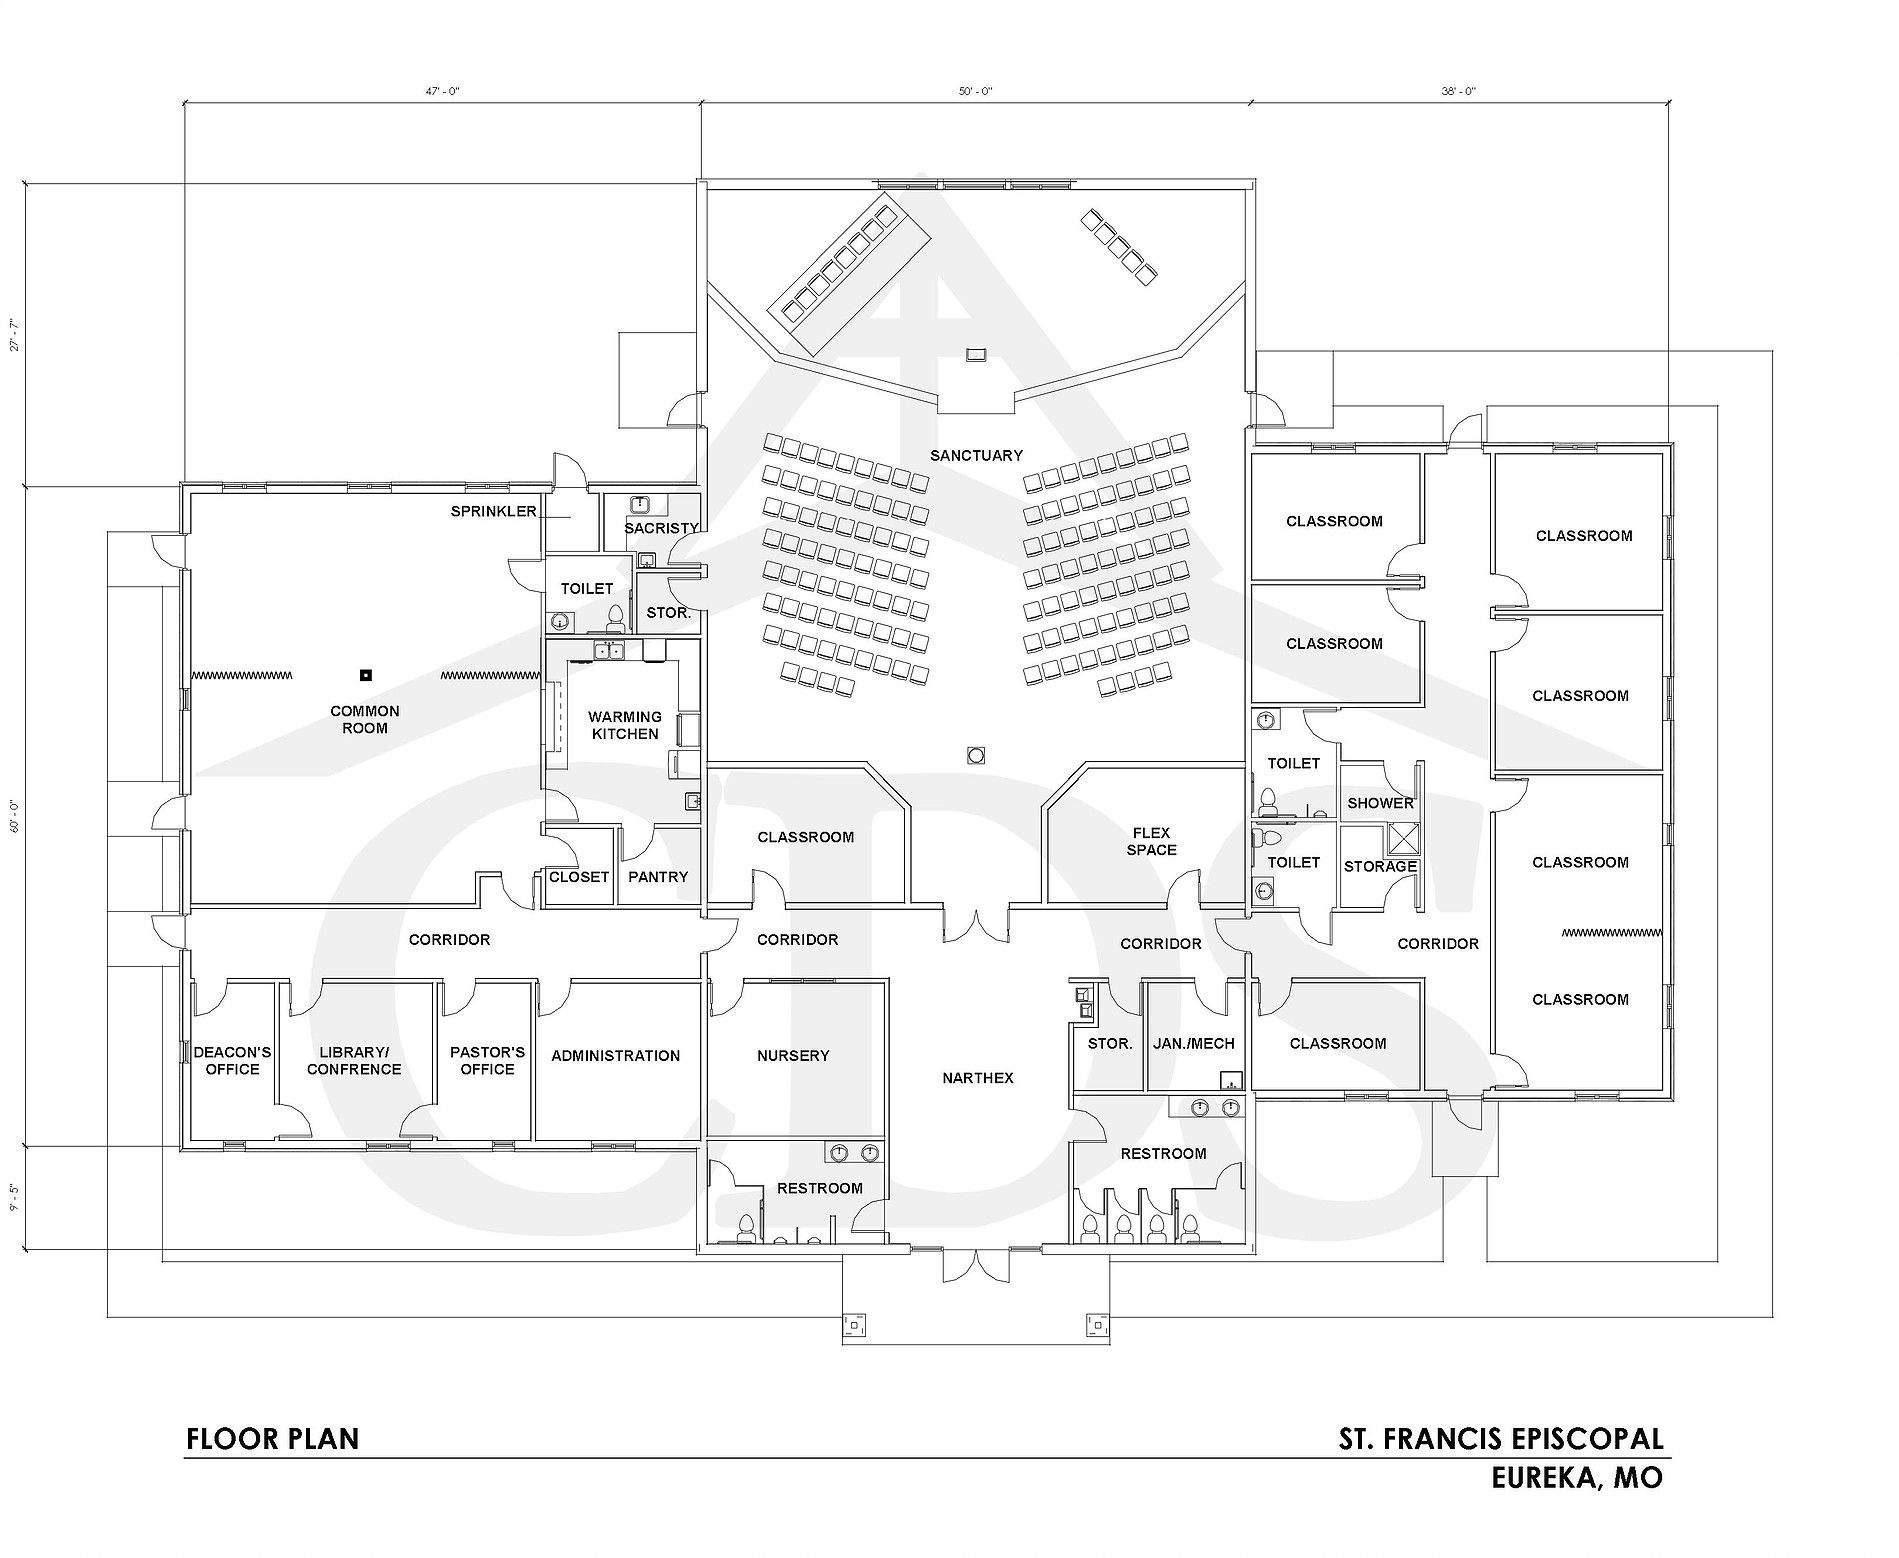 Church development services cds has been in construction design and developing property for almost thirty years also best new images rh pinterest